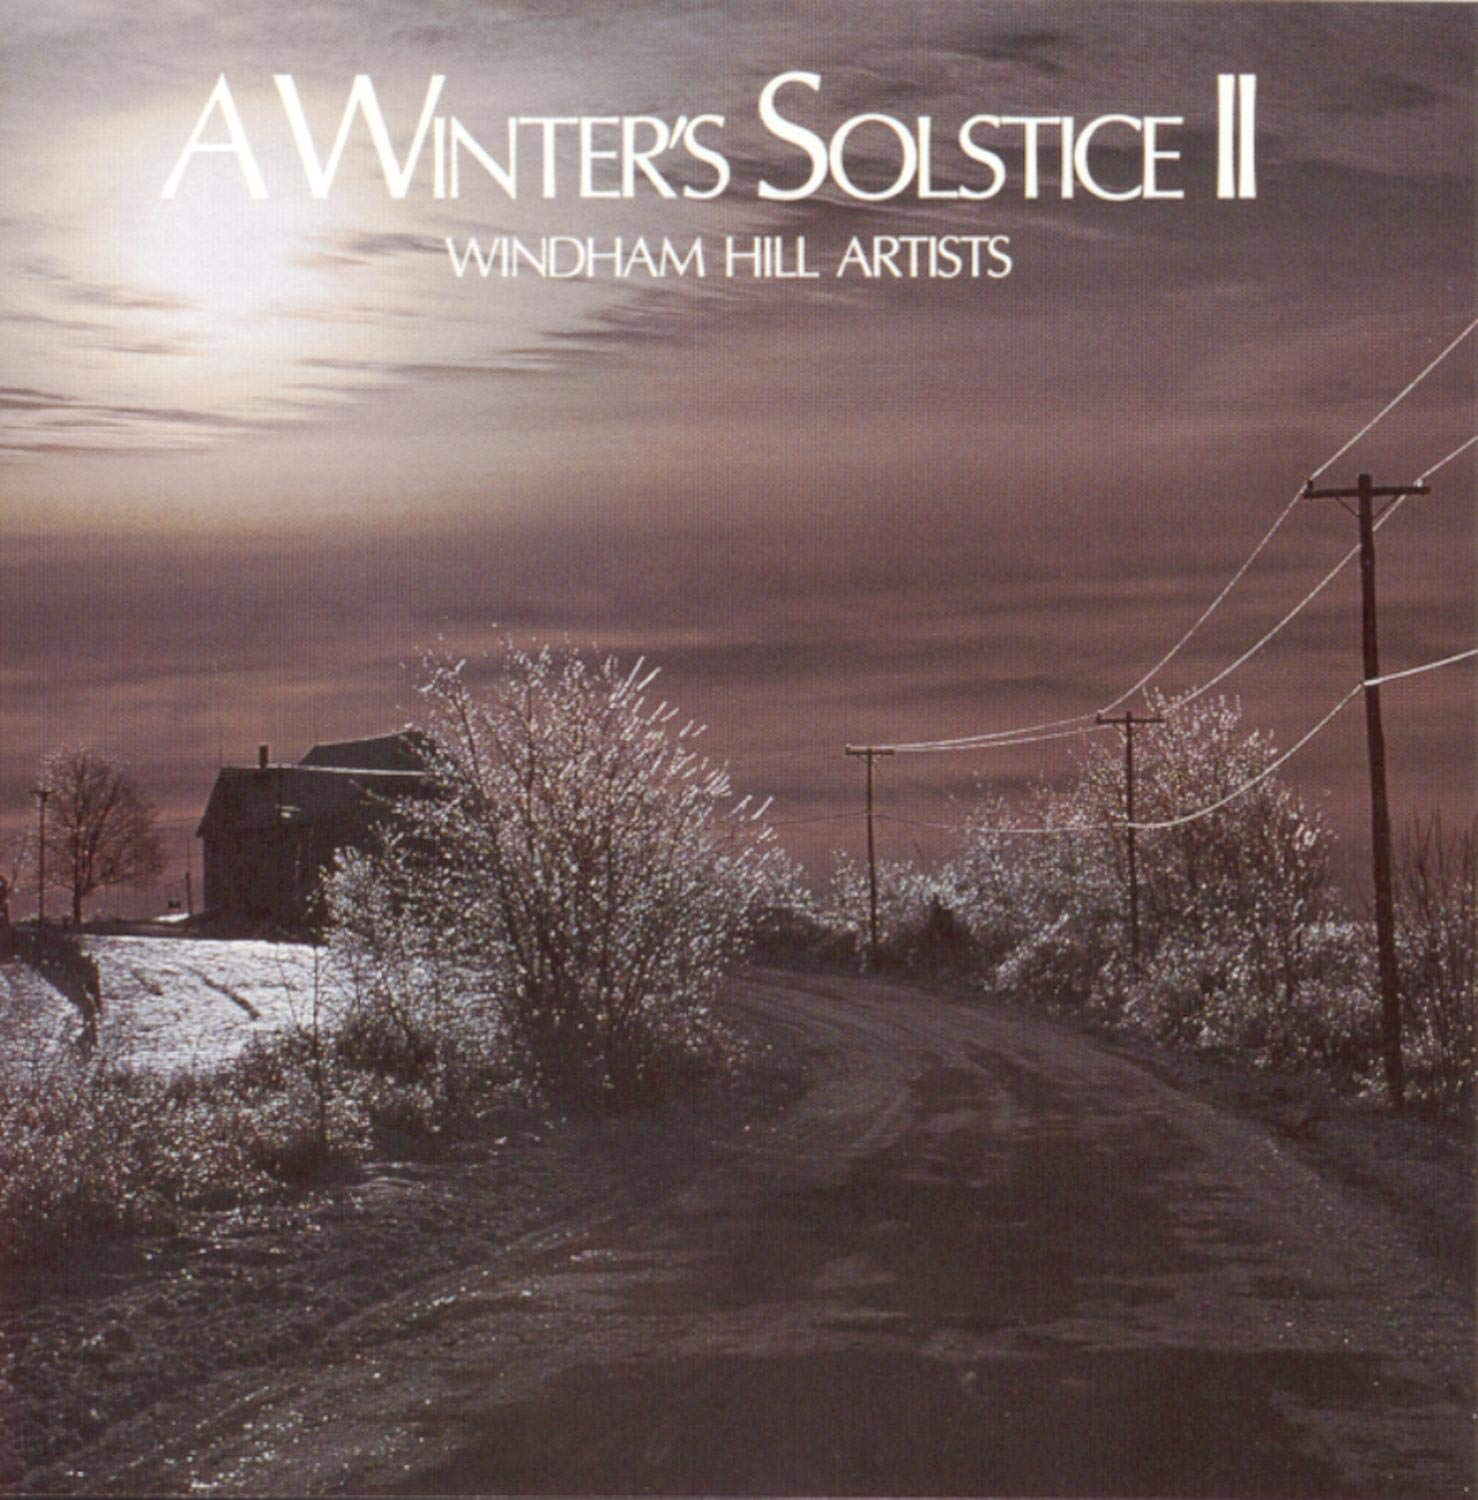 A Winter's Solstice II by WINTER'S SOLSTICE